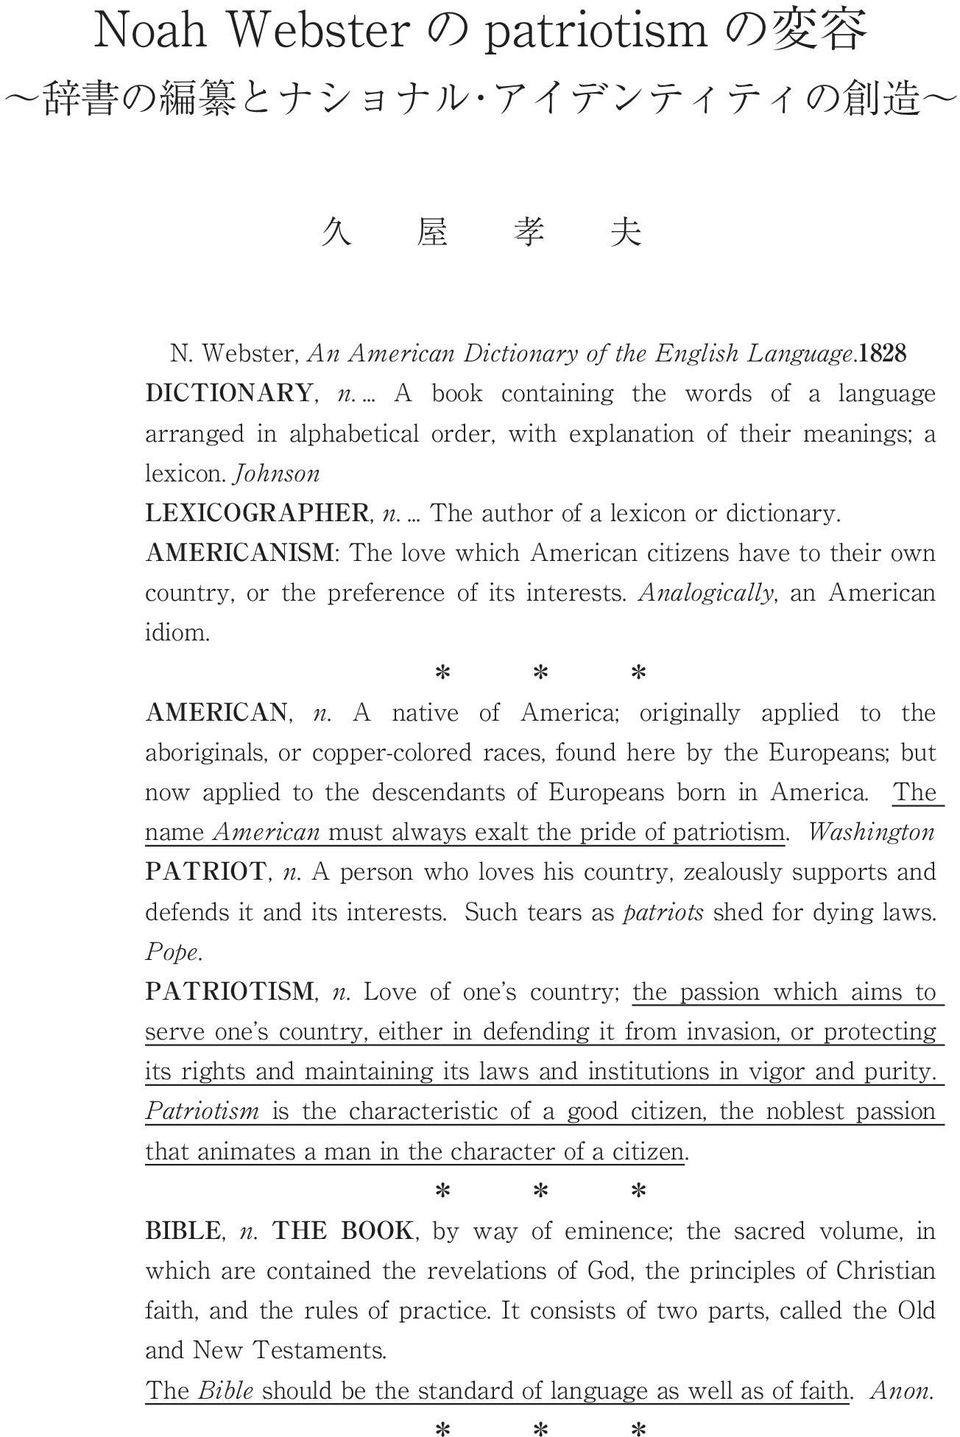 ... The author of a lexicon or dictionary. AMERICANISM: The love which American citizens have to their own country, or the preference of its interests. Analogically, an American idiom.